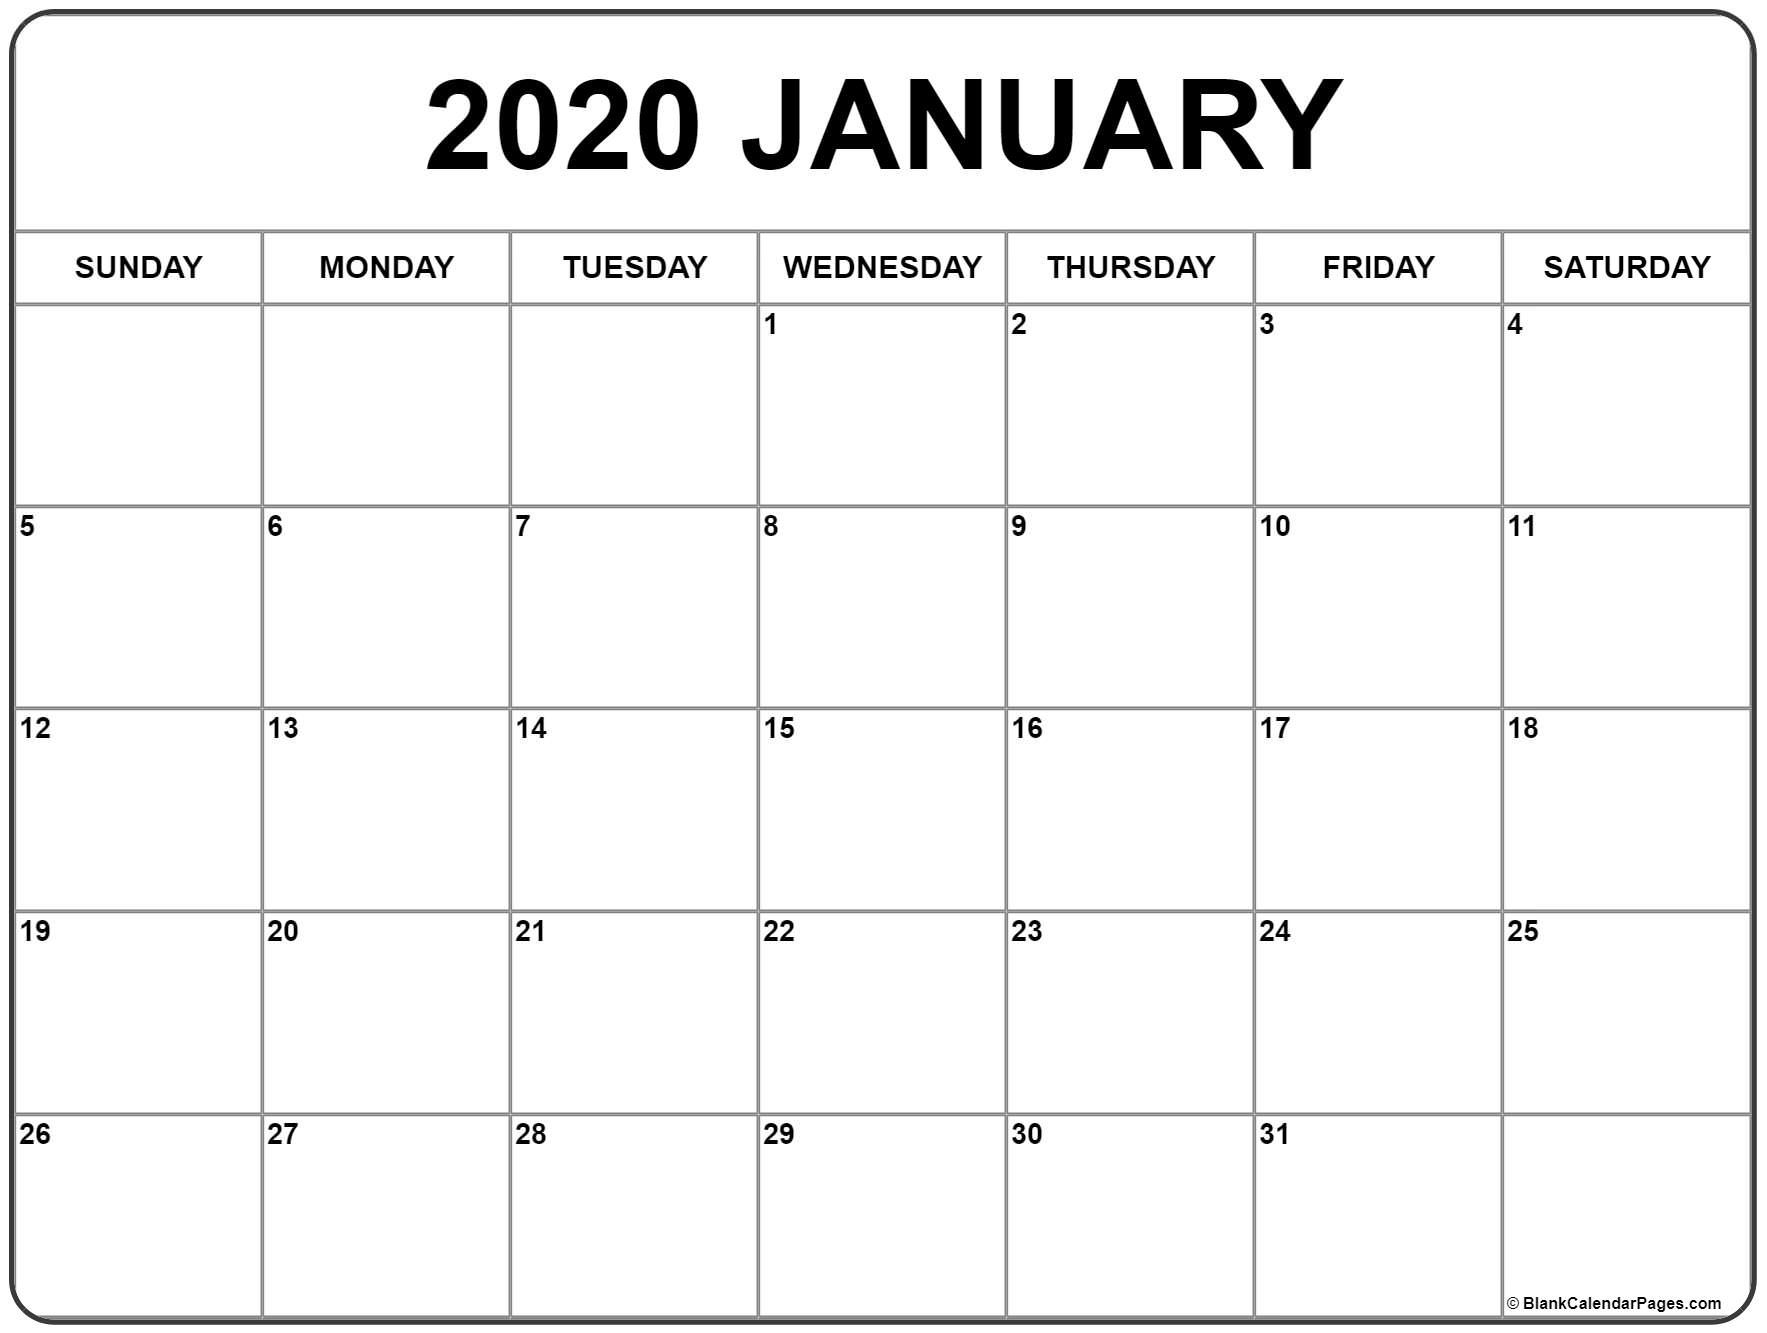 January 2020 Calendar | Free Printable Monthly Calendars for Keyboard Calendar Strips 2020